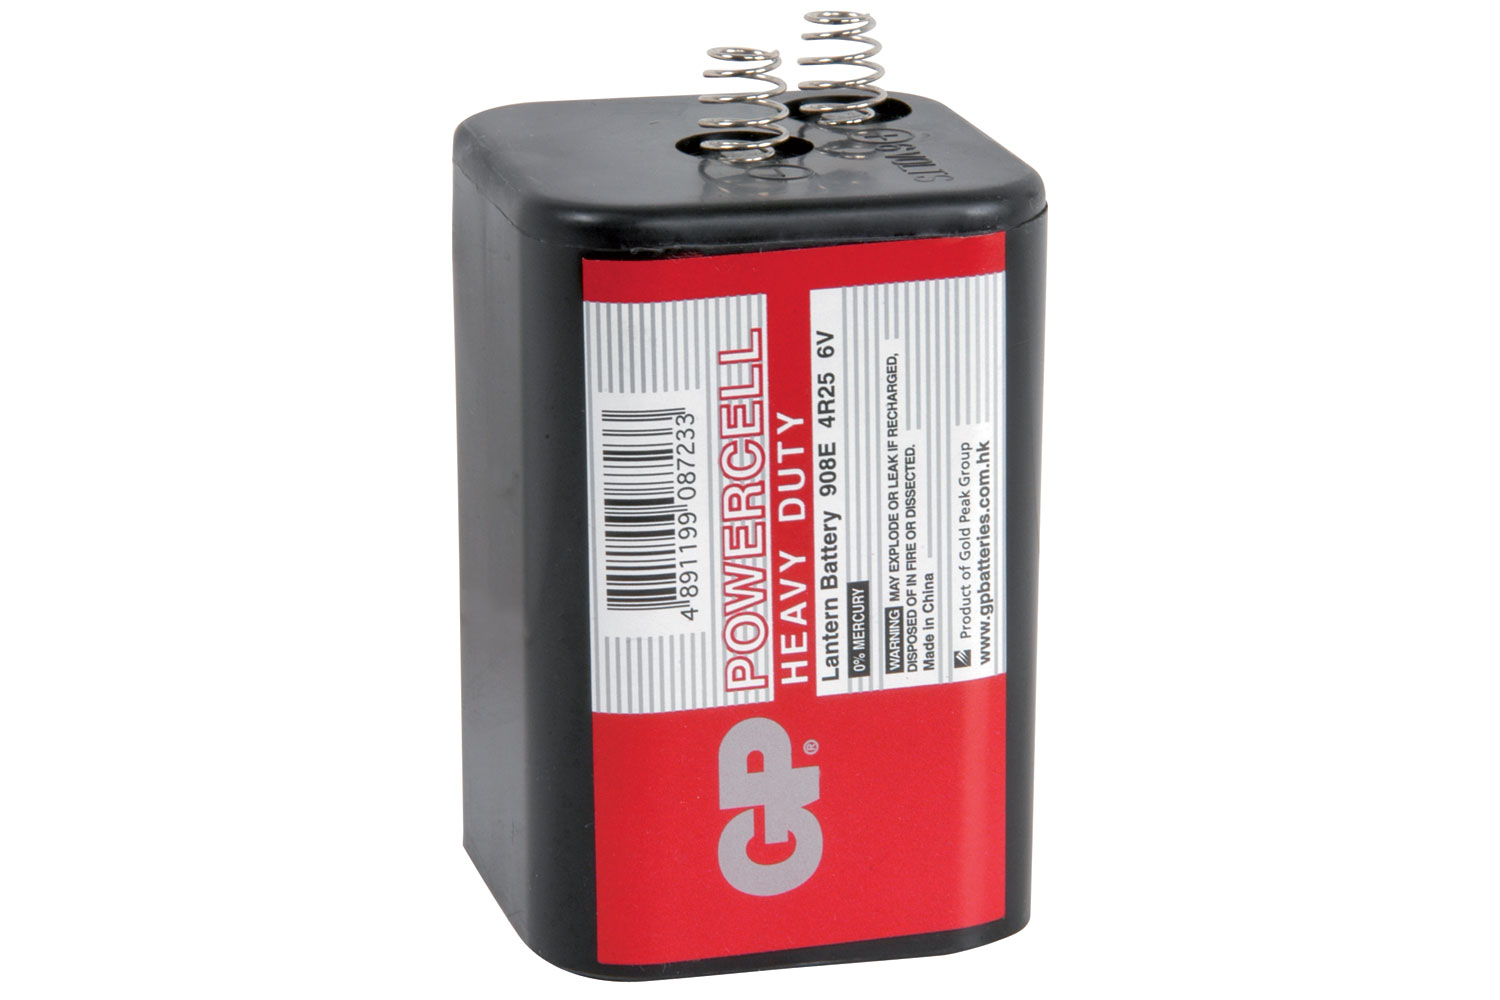 GP¶© Powercell Battery, GP908 (PJ996, 4R25), 6V, 66.0x66.0x111.0mm, 1pc/pack.